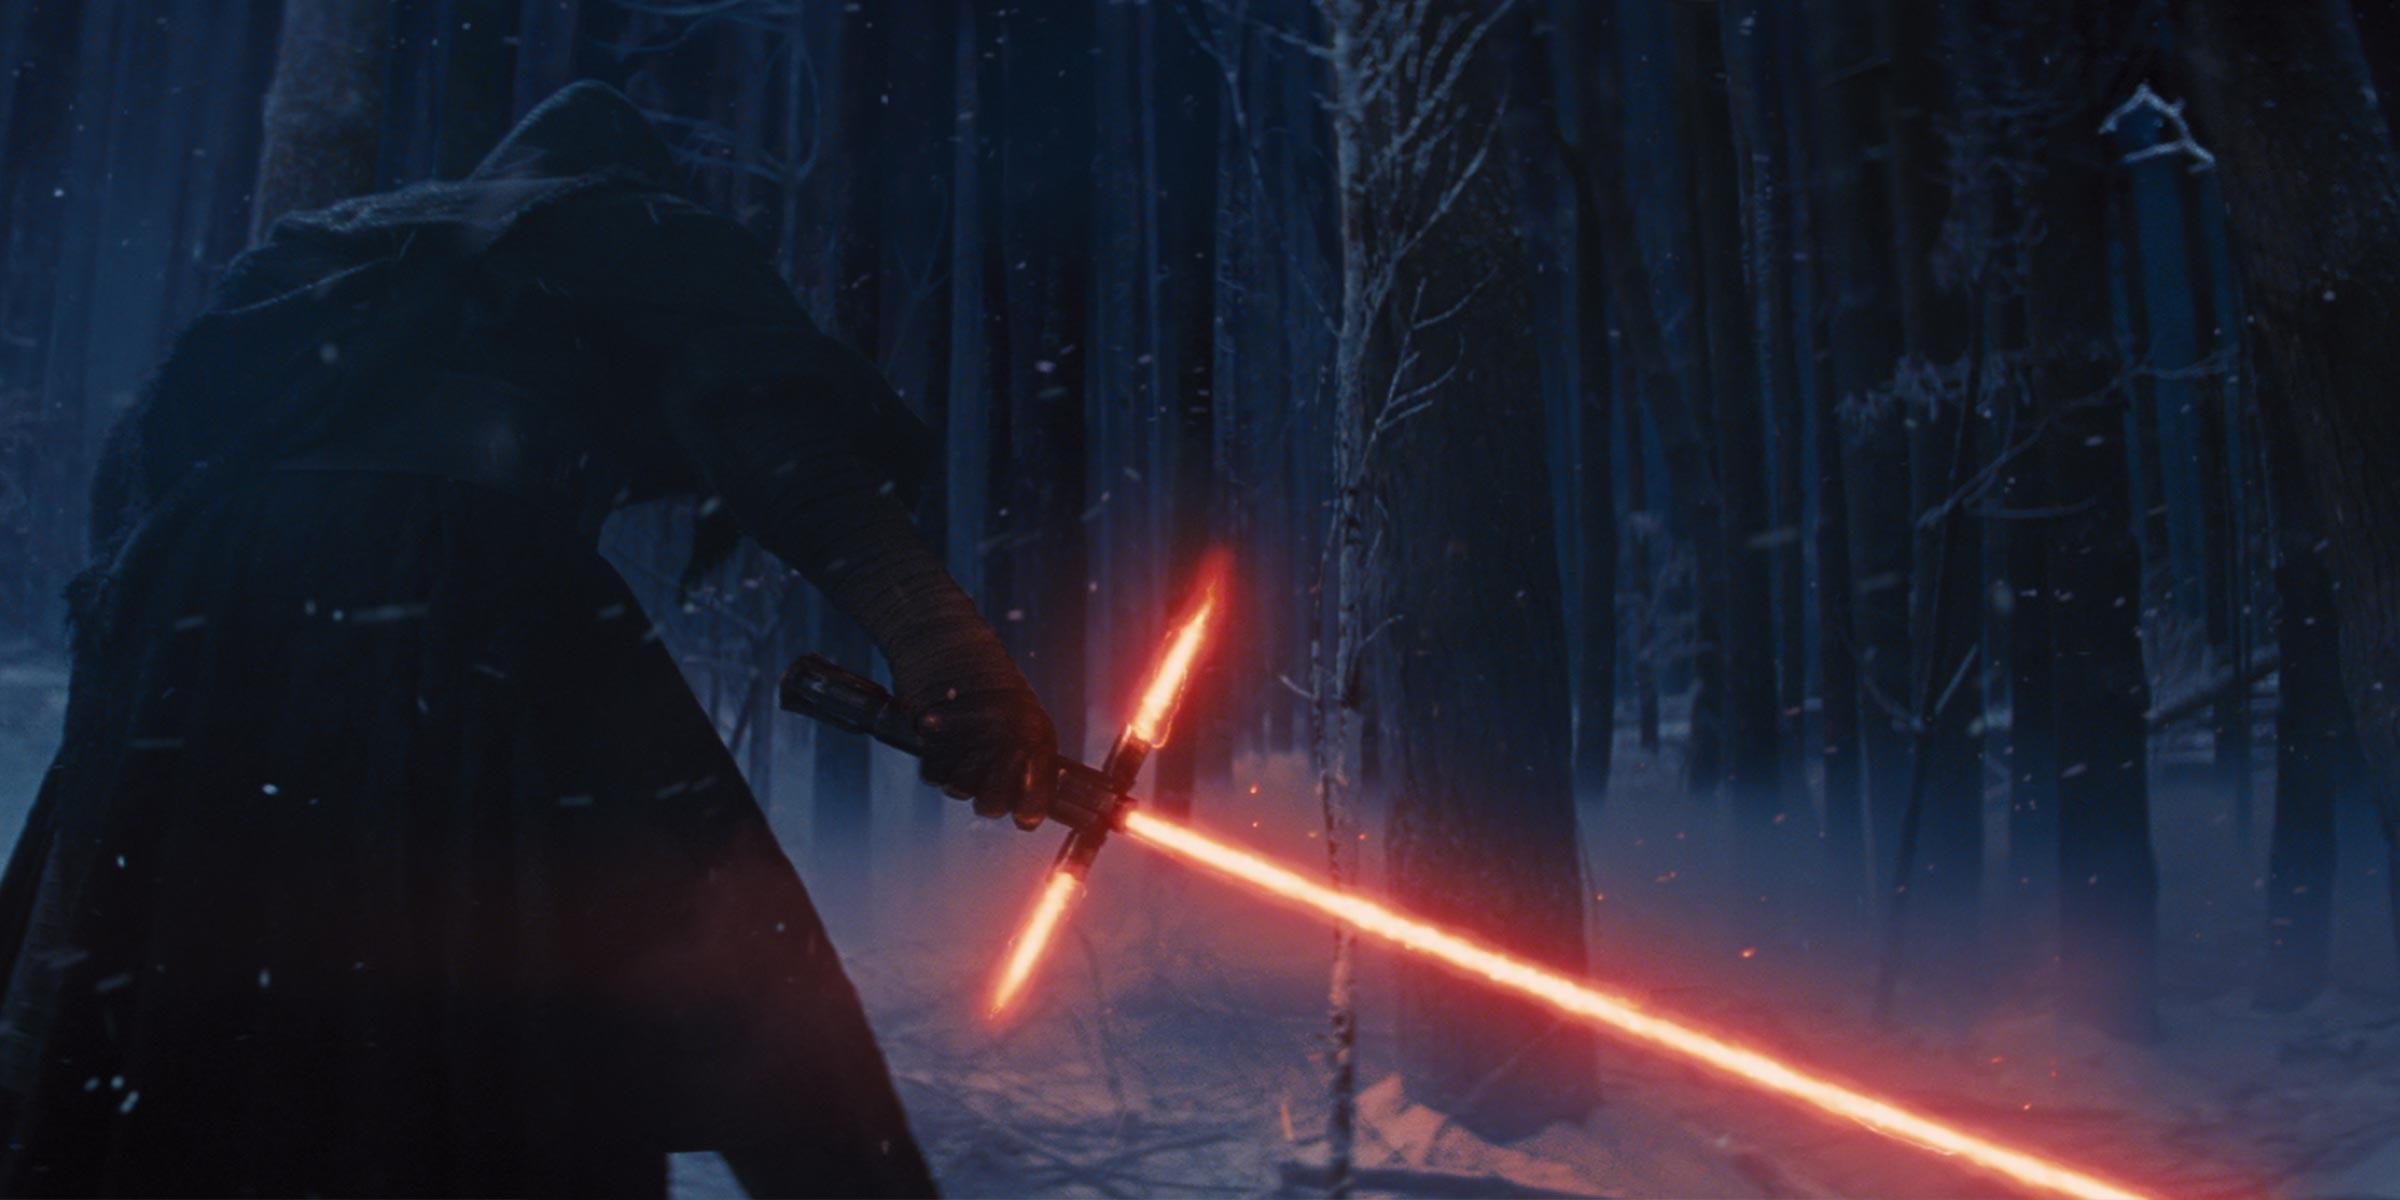 A new Vader-esque Sith Lord reinvents the Empire, calling it the First Order.